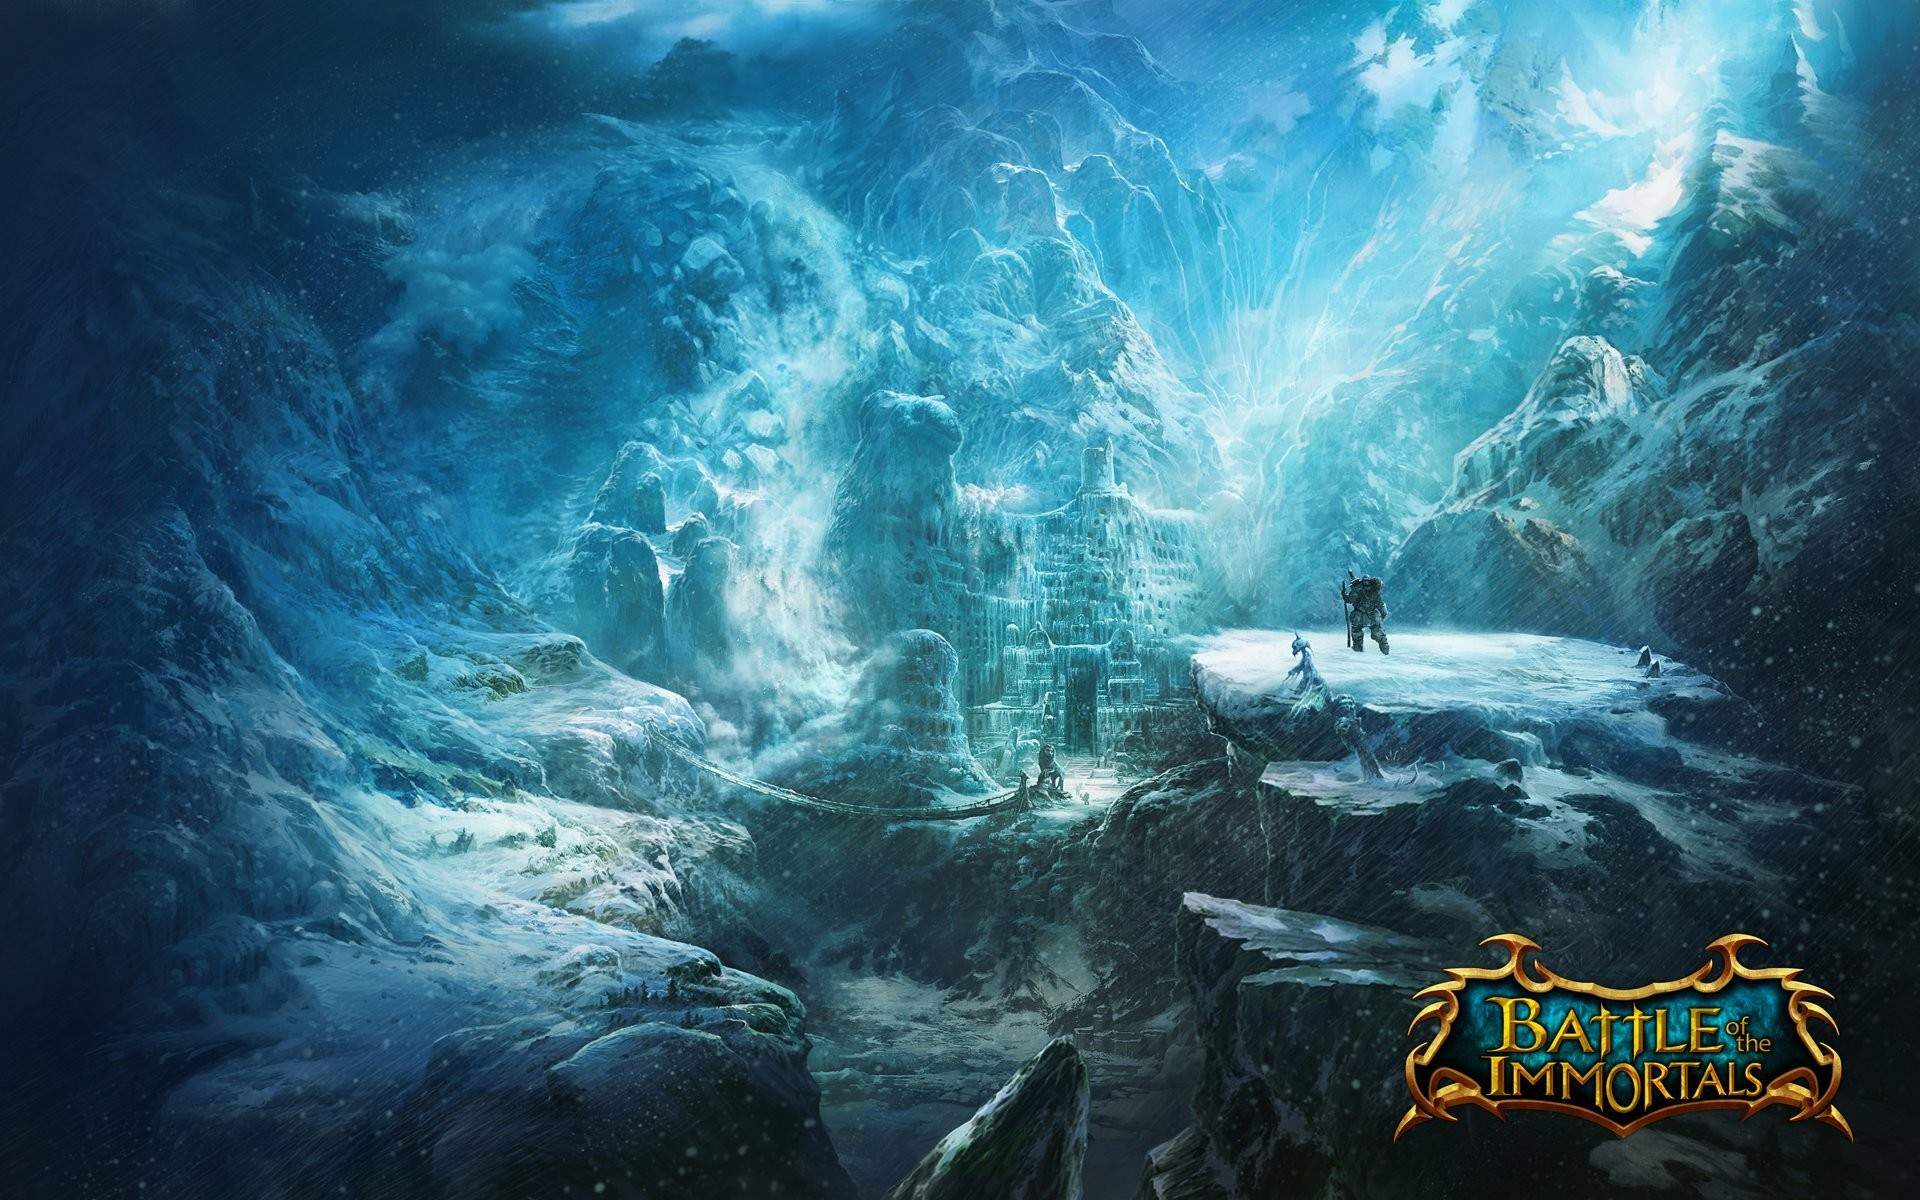 battle of the immortals game wallpapers battle immortal mountain castle  valley snow wanderer